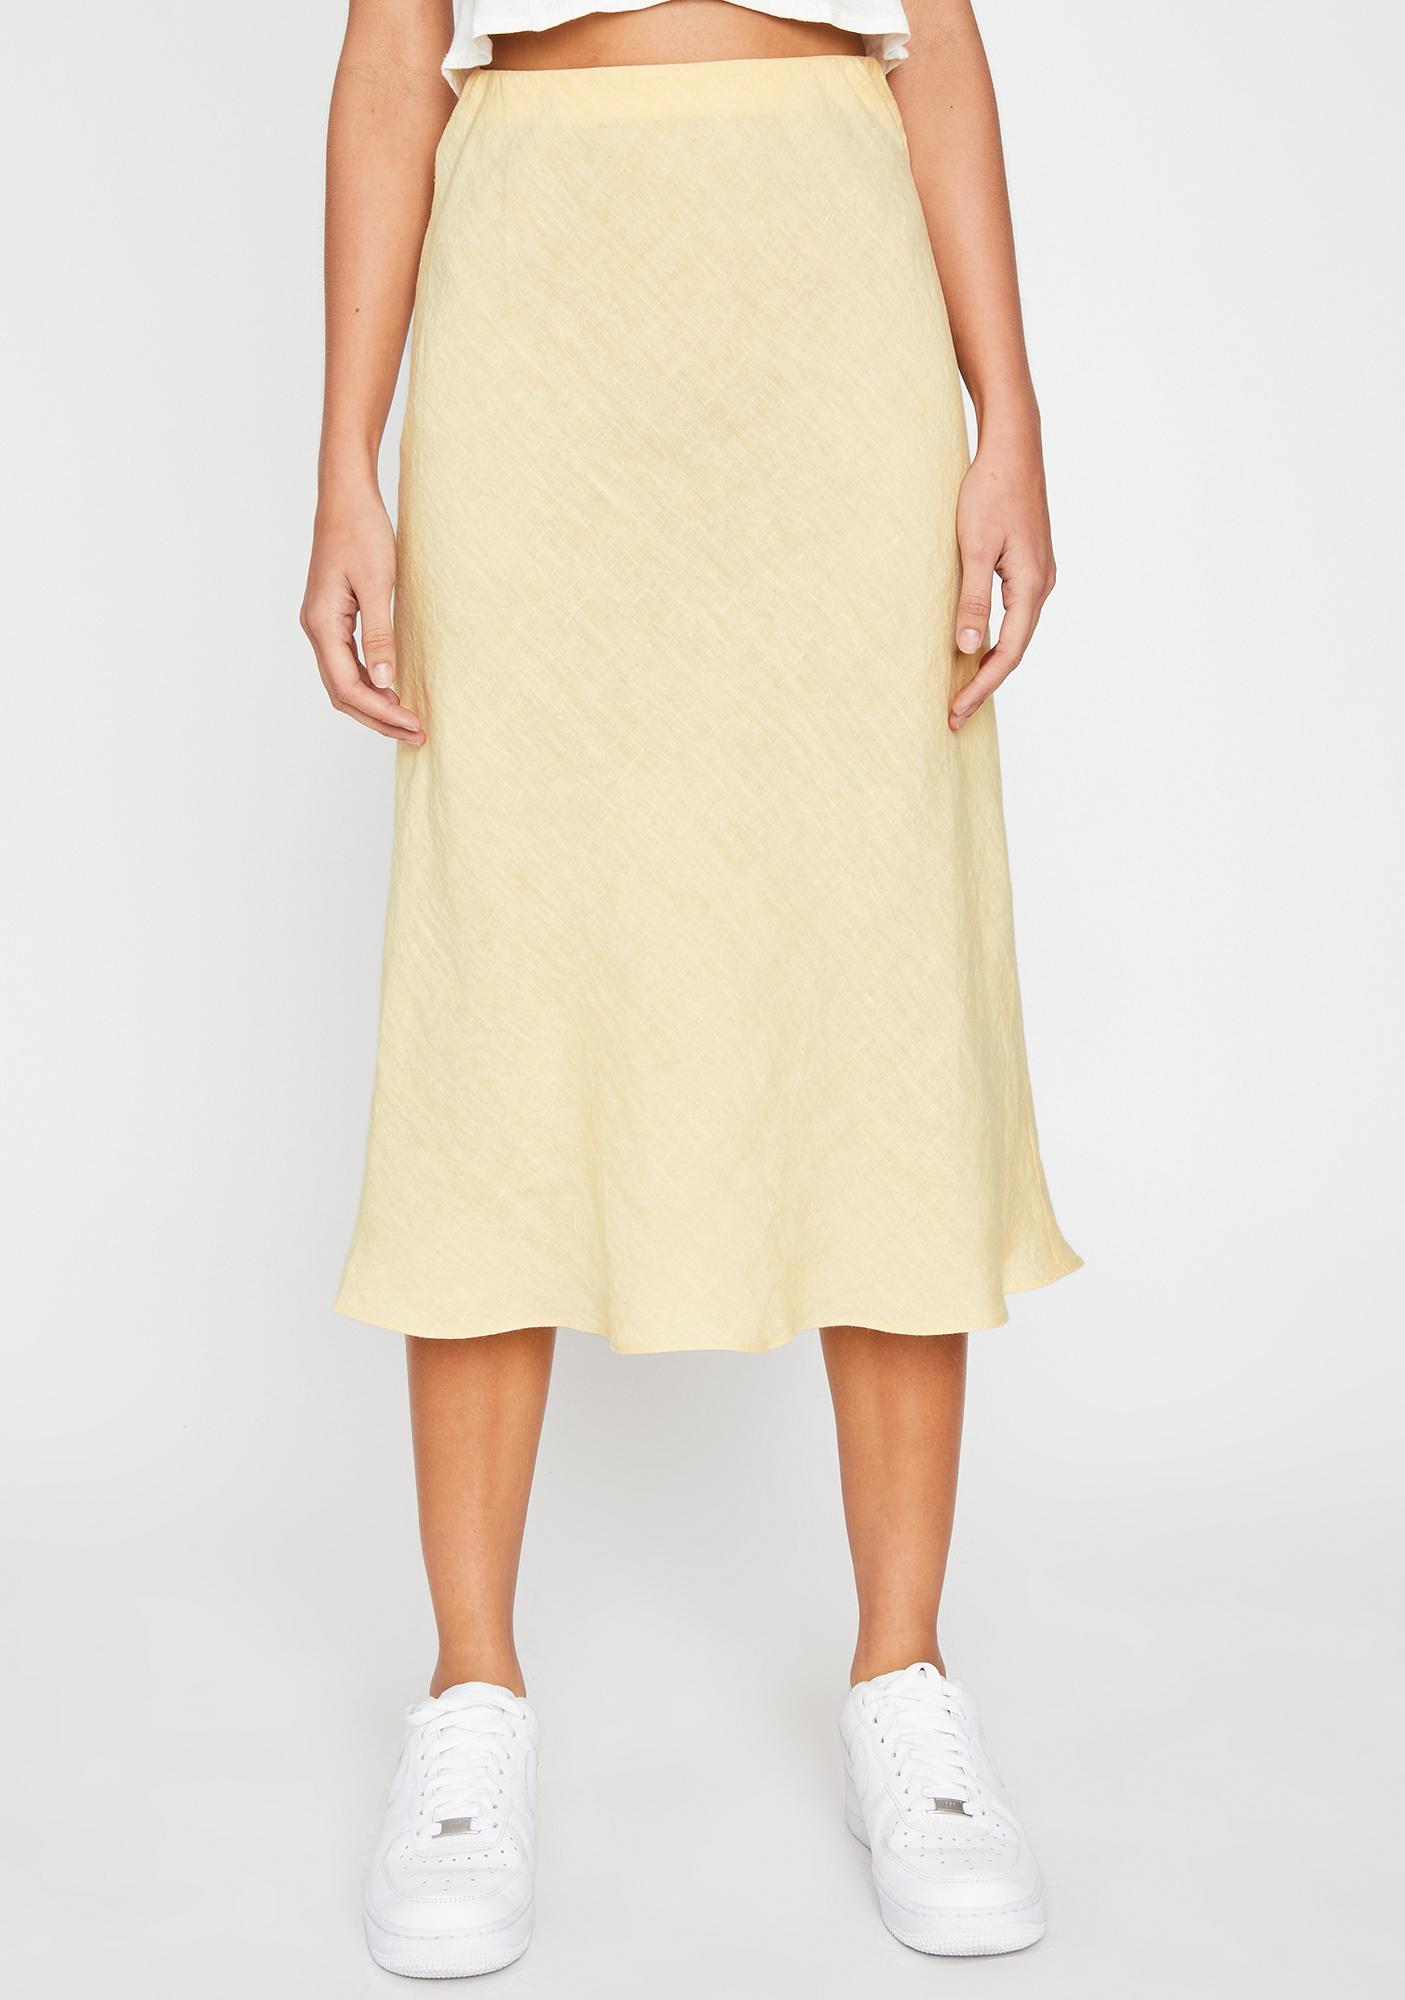 Buttermilk Rose Water Midi Skirt